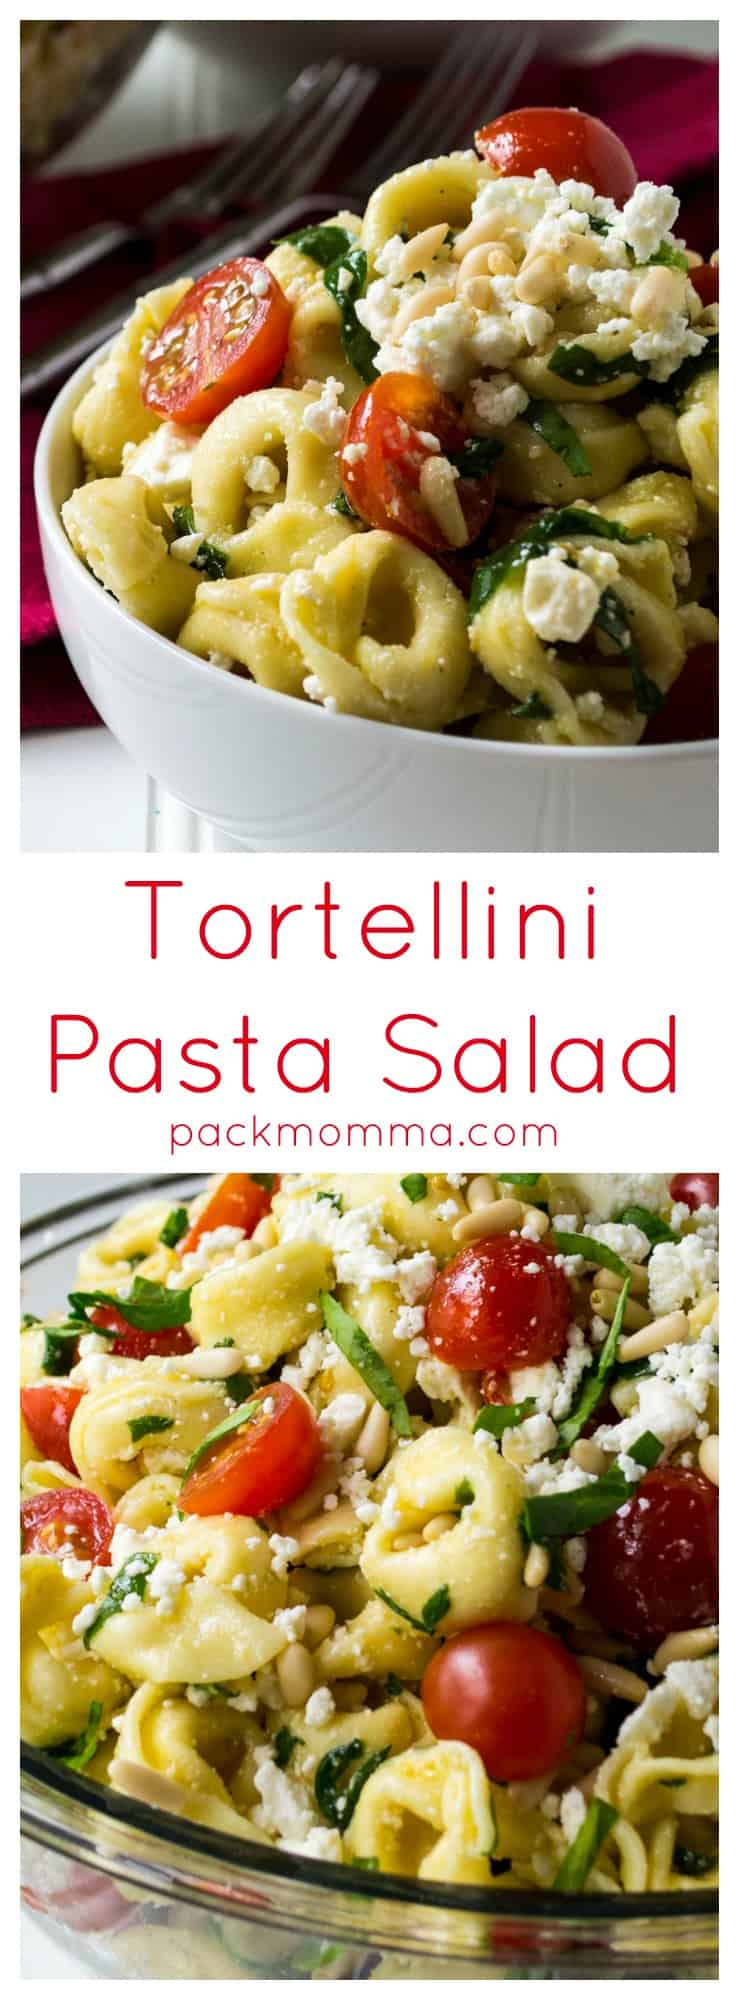 Tortellini Pasta Salad | This Tortellini Pasta Salad is light, refreshing and so quick to put together it is the perfect side dish to bring to any of your summer backyard parties. | Pack Momma | https://www.packmomma.com